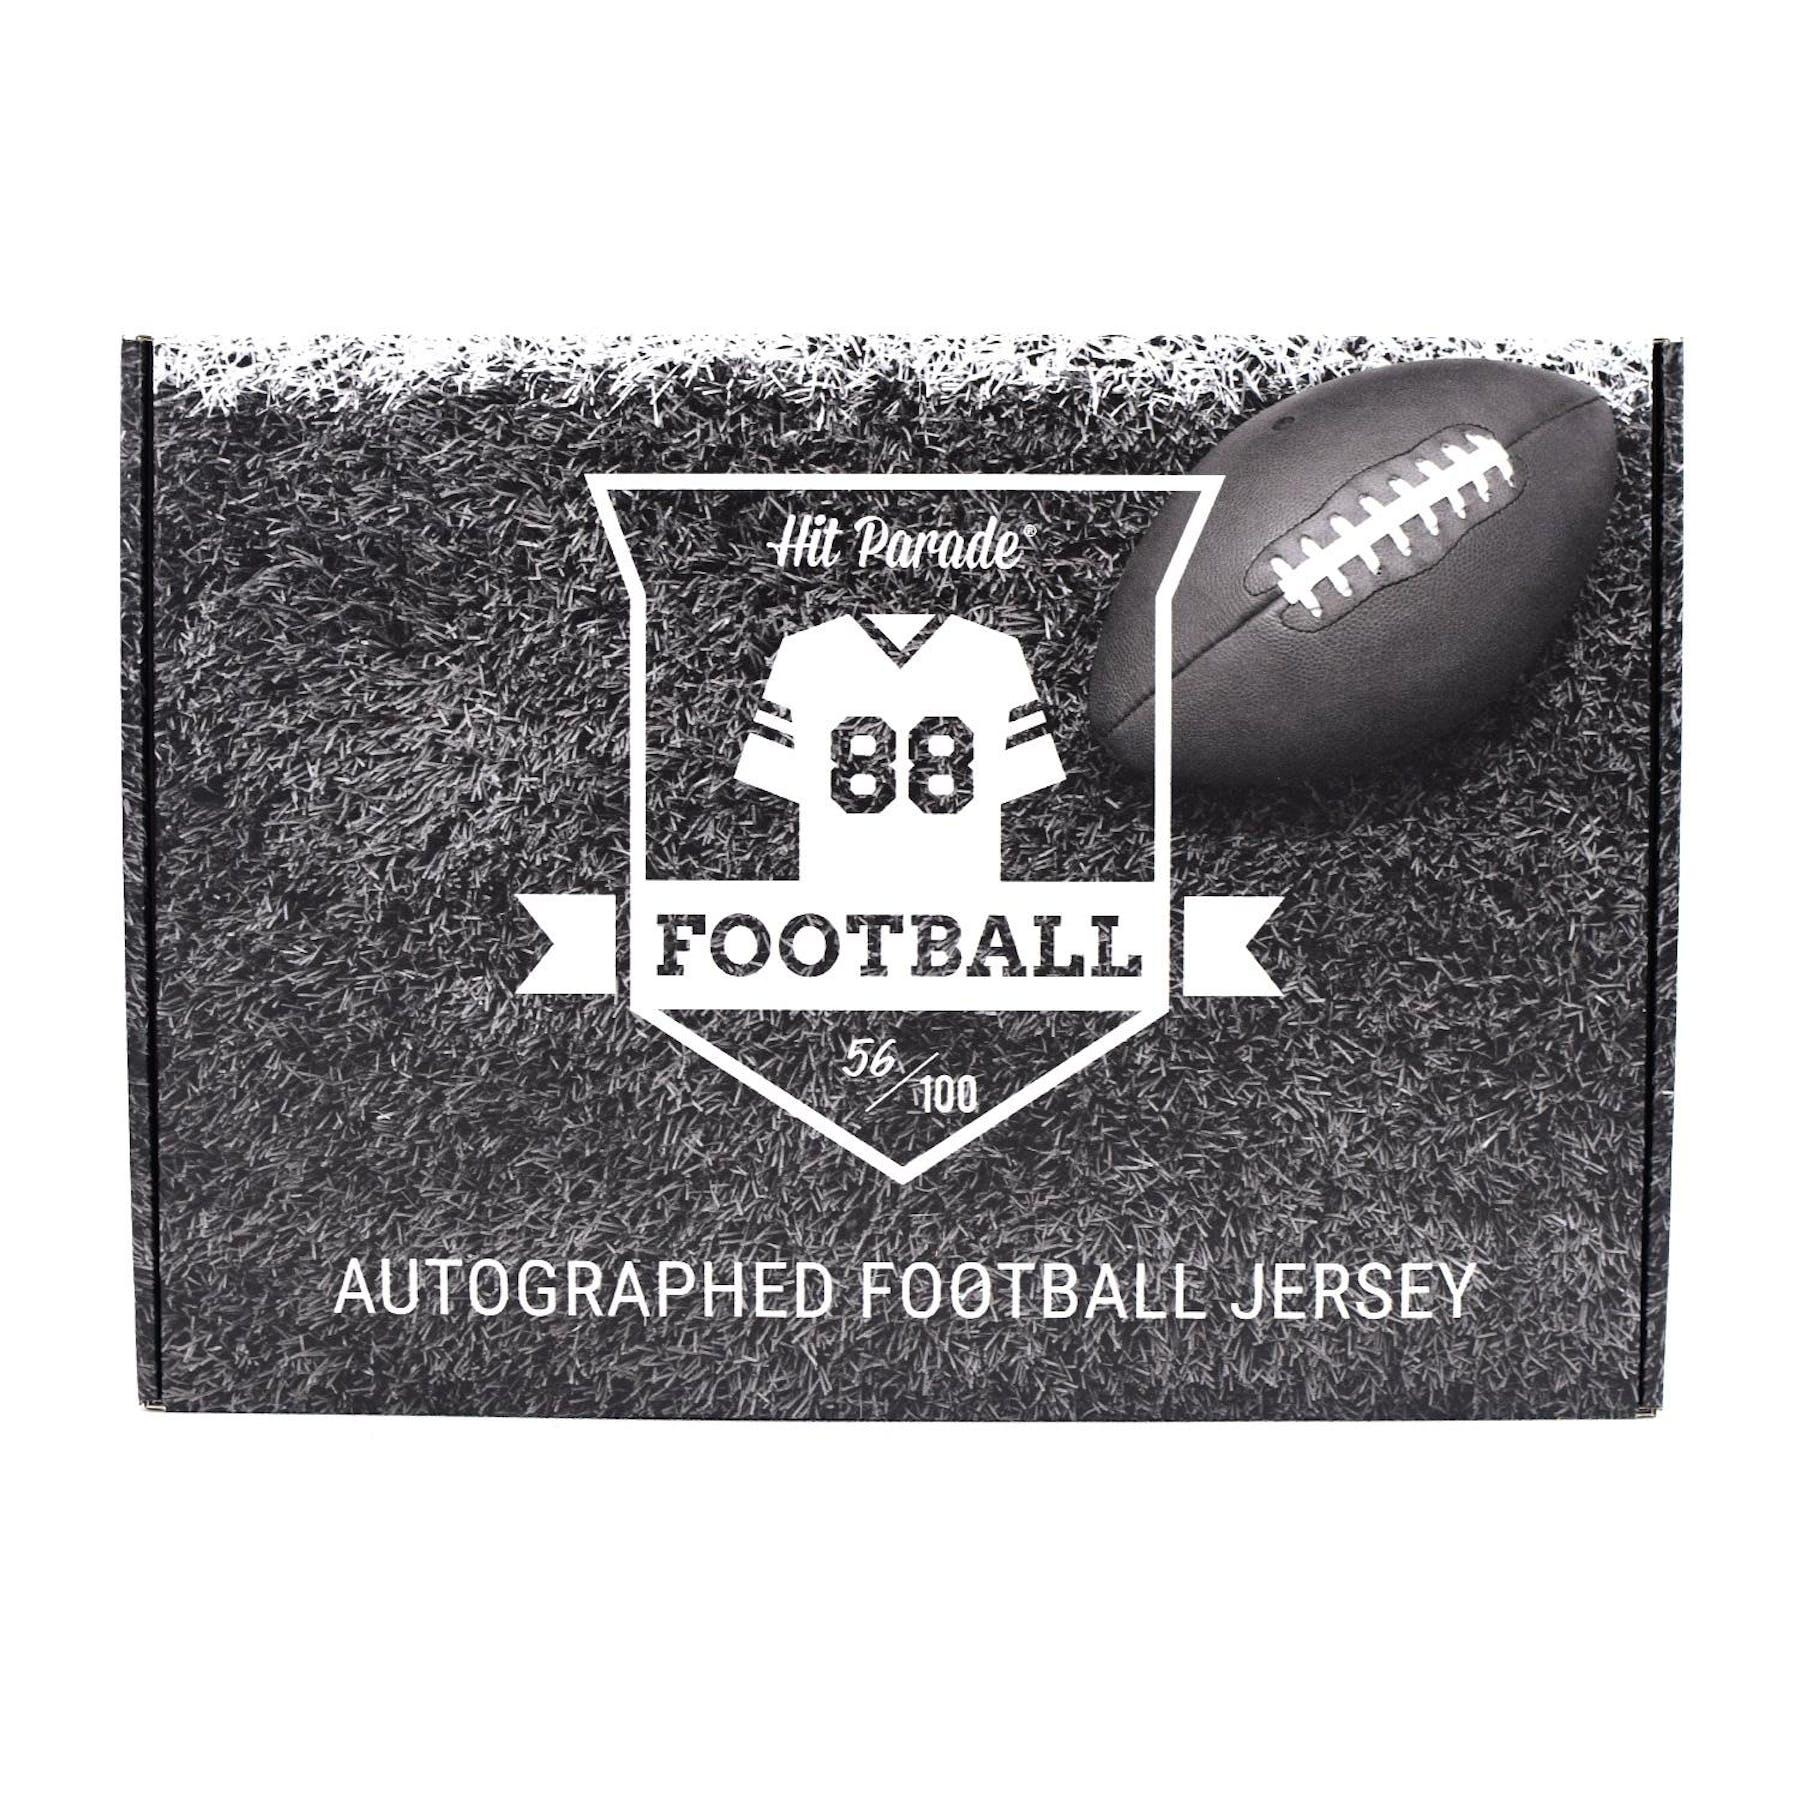 info for 1432b 8fe47 2019 Hit Parade Autographed Football Jersey Hobby Box - Series 7 -